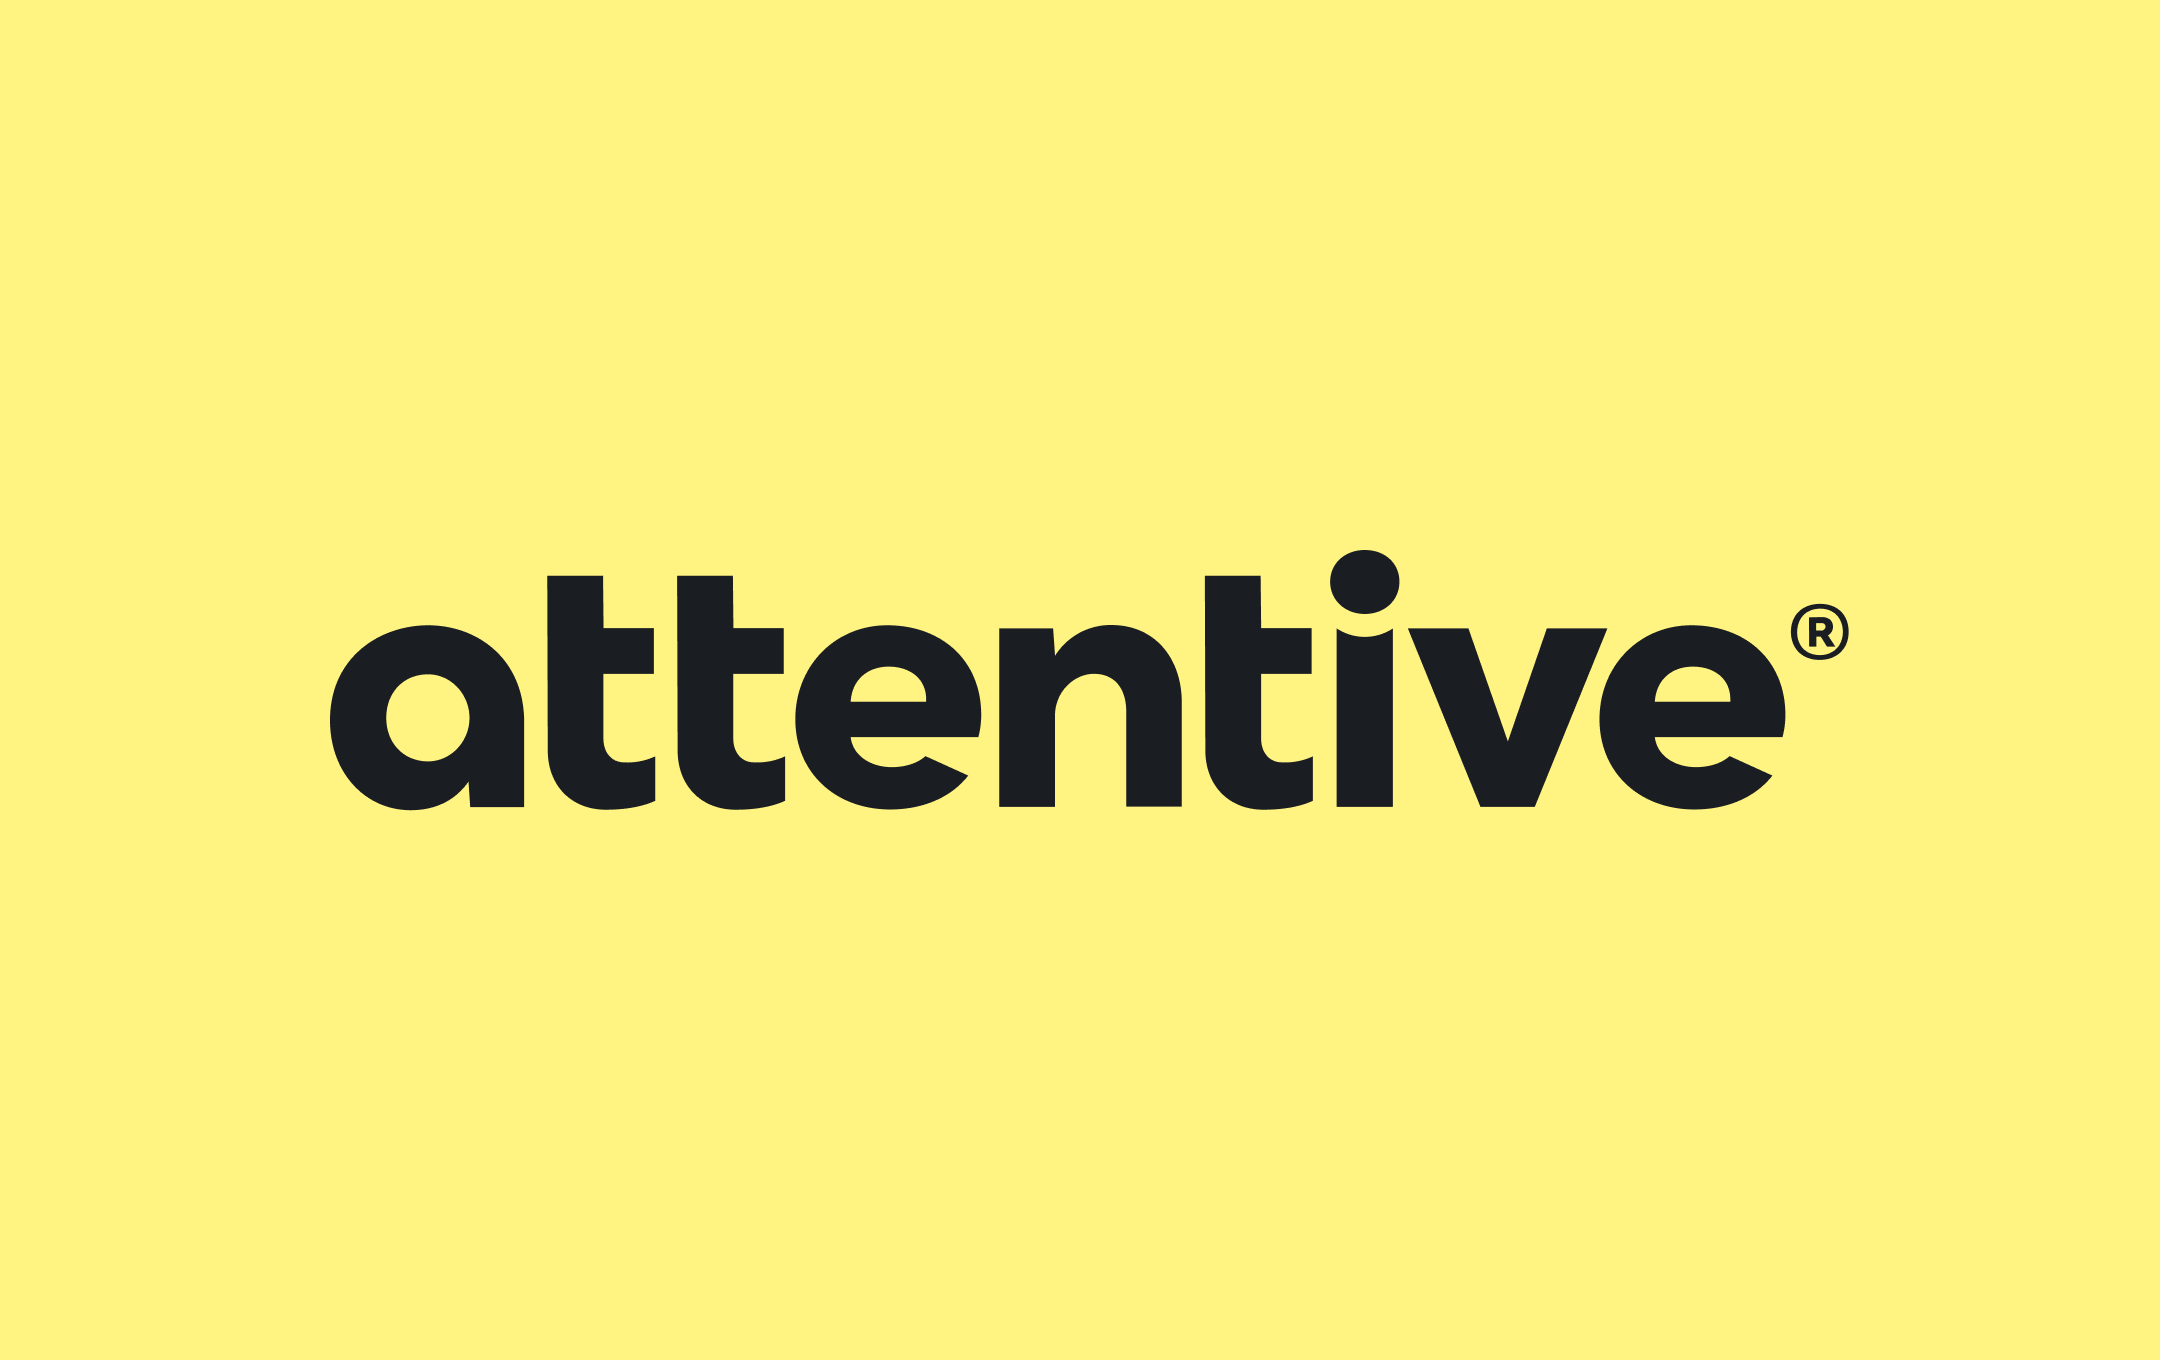 Attentive yellow and black logo